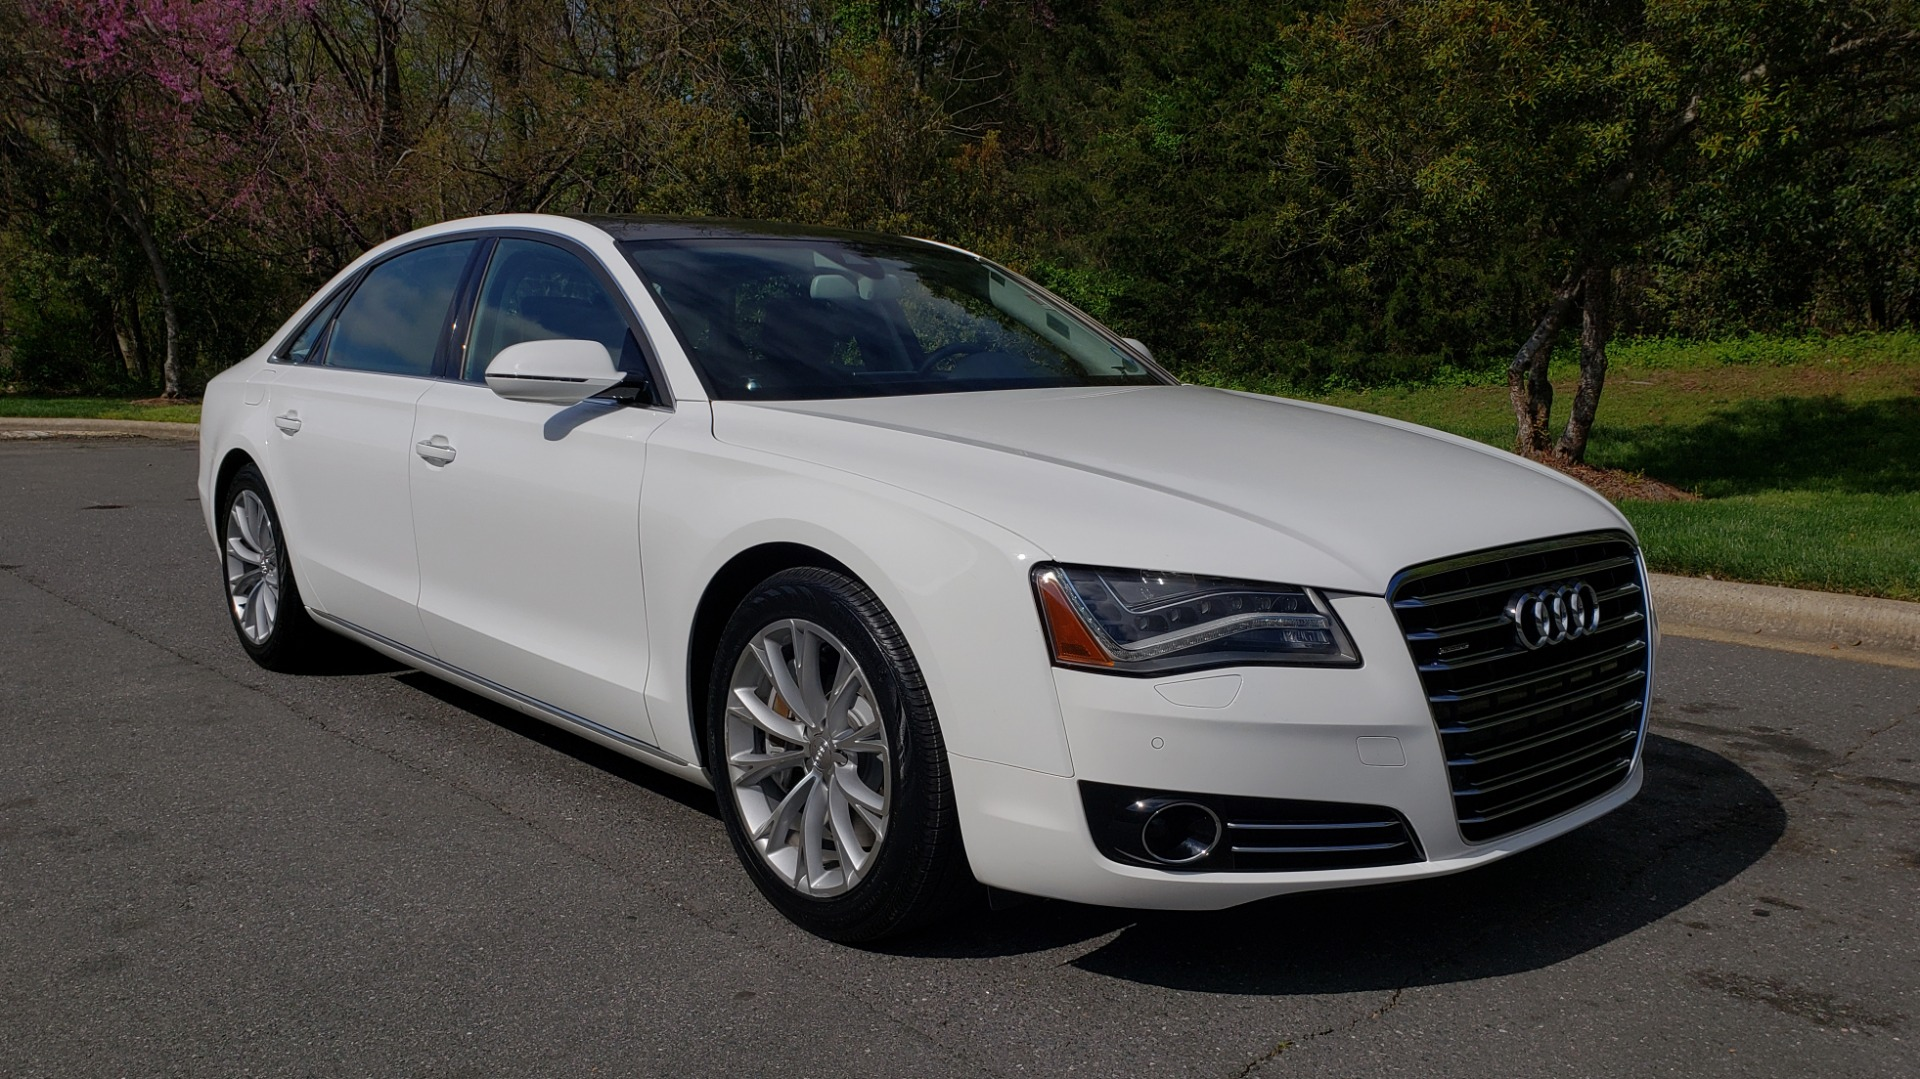 Used 2011 Audi A8 L QUATTRO / NAV / PANO-ROOF / REARVIEW / BSM / B&O SND for sale Sold at Formula Imports in Charlotte NC 28227 4